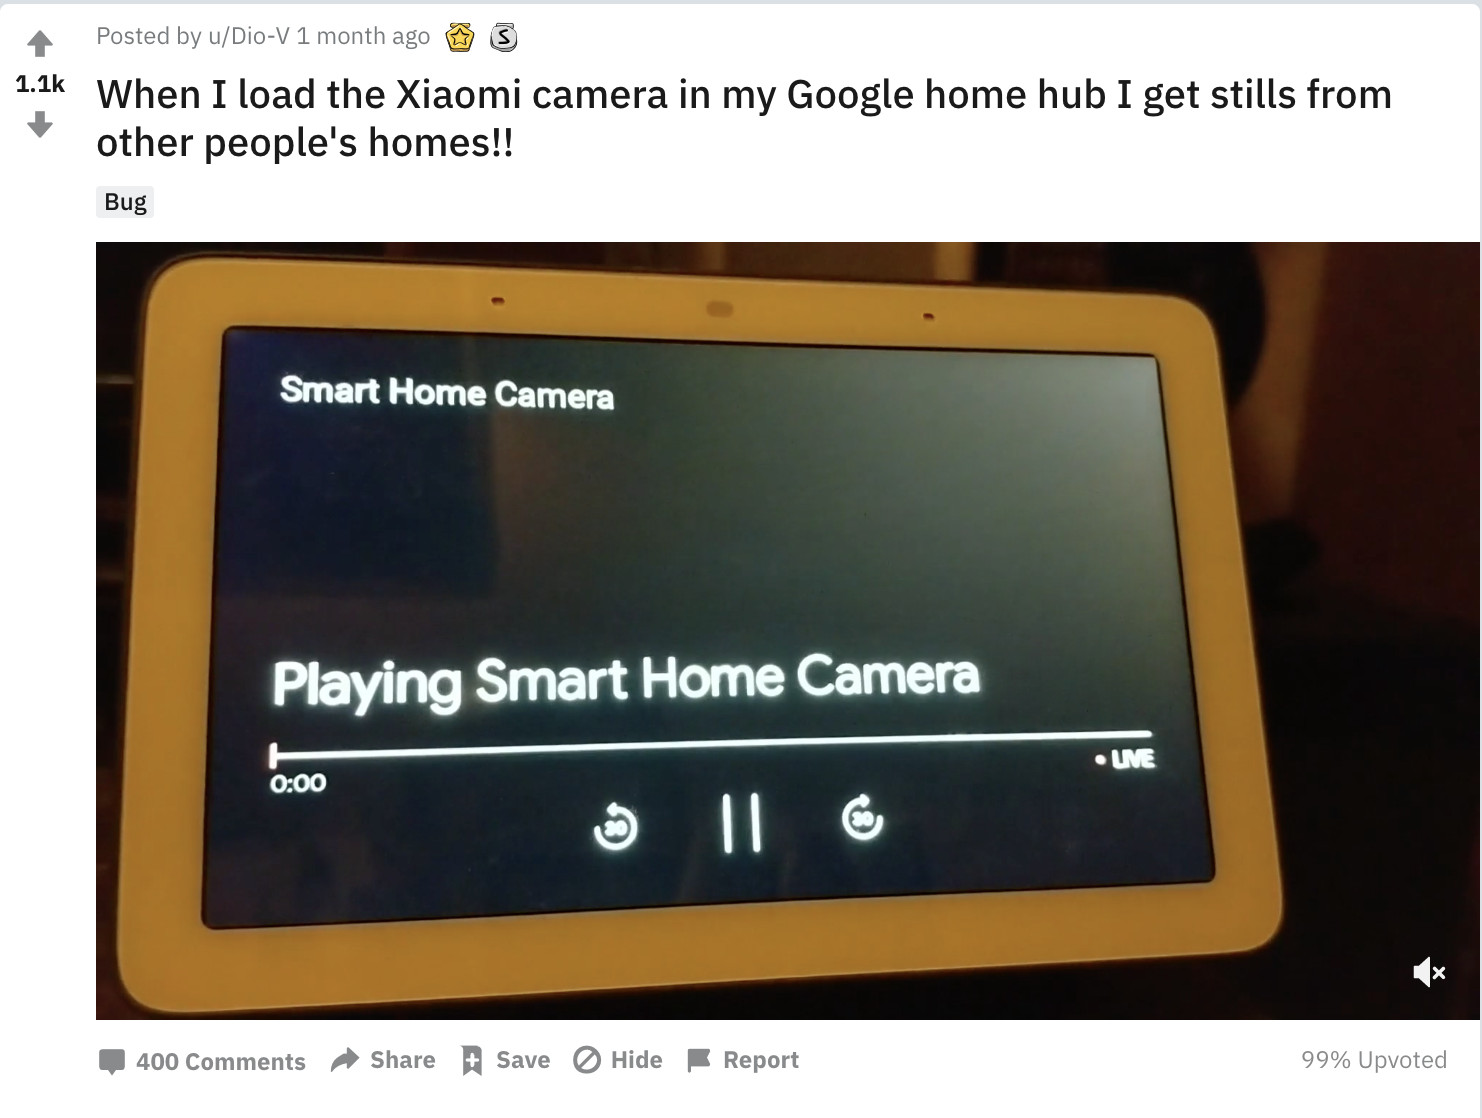 When I load the Xiaomi camera in my Google home hub I get stills from other people's homes!! - Reddit